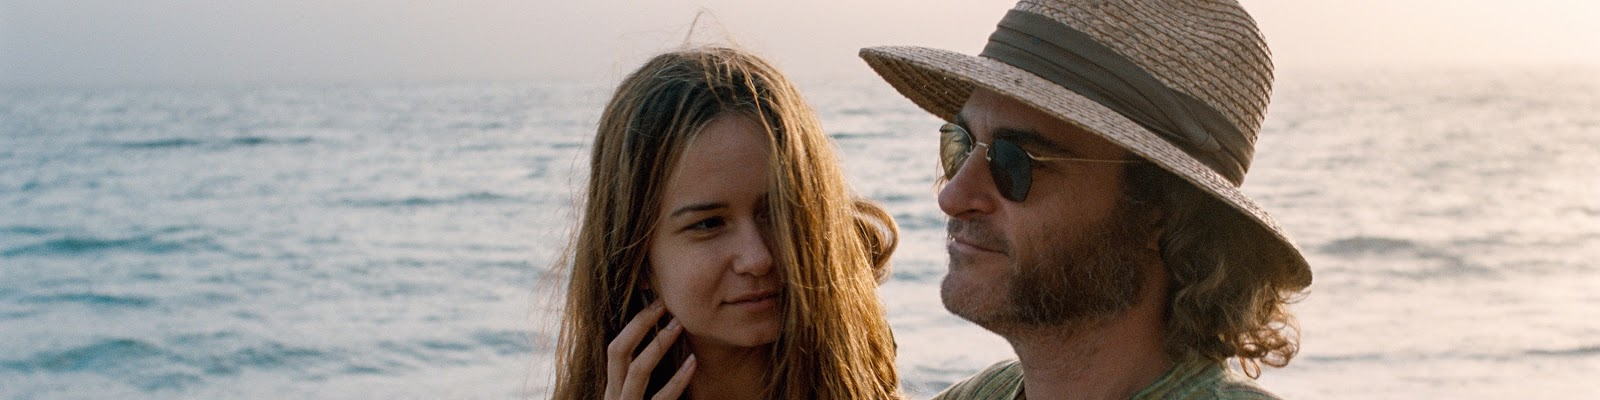 Joaquin Phoenix Katherine Waterston |Inherent Vice